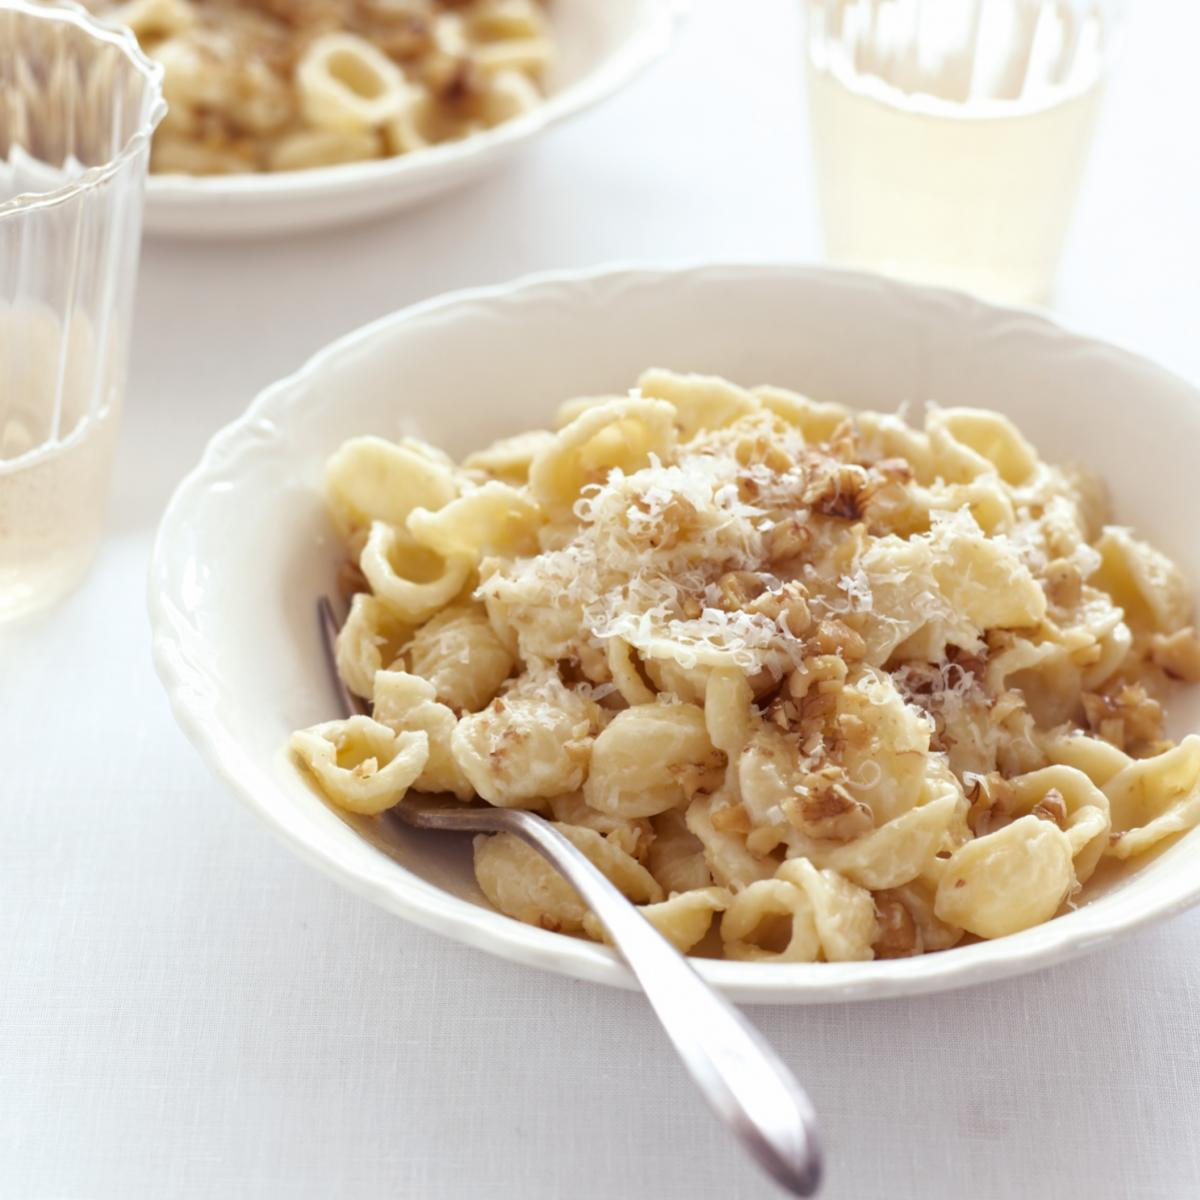 A picture of Delia's Orecchiette with Walnut Sauce recipe